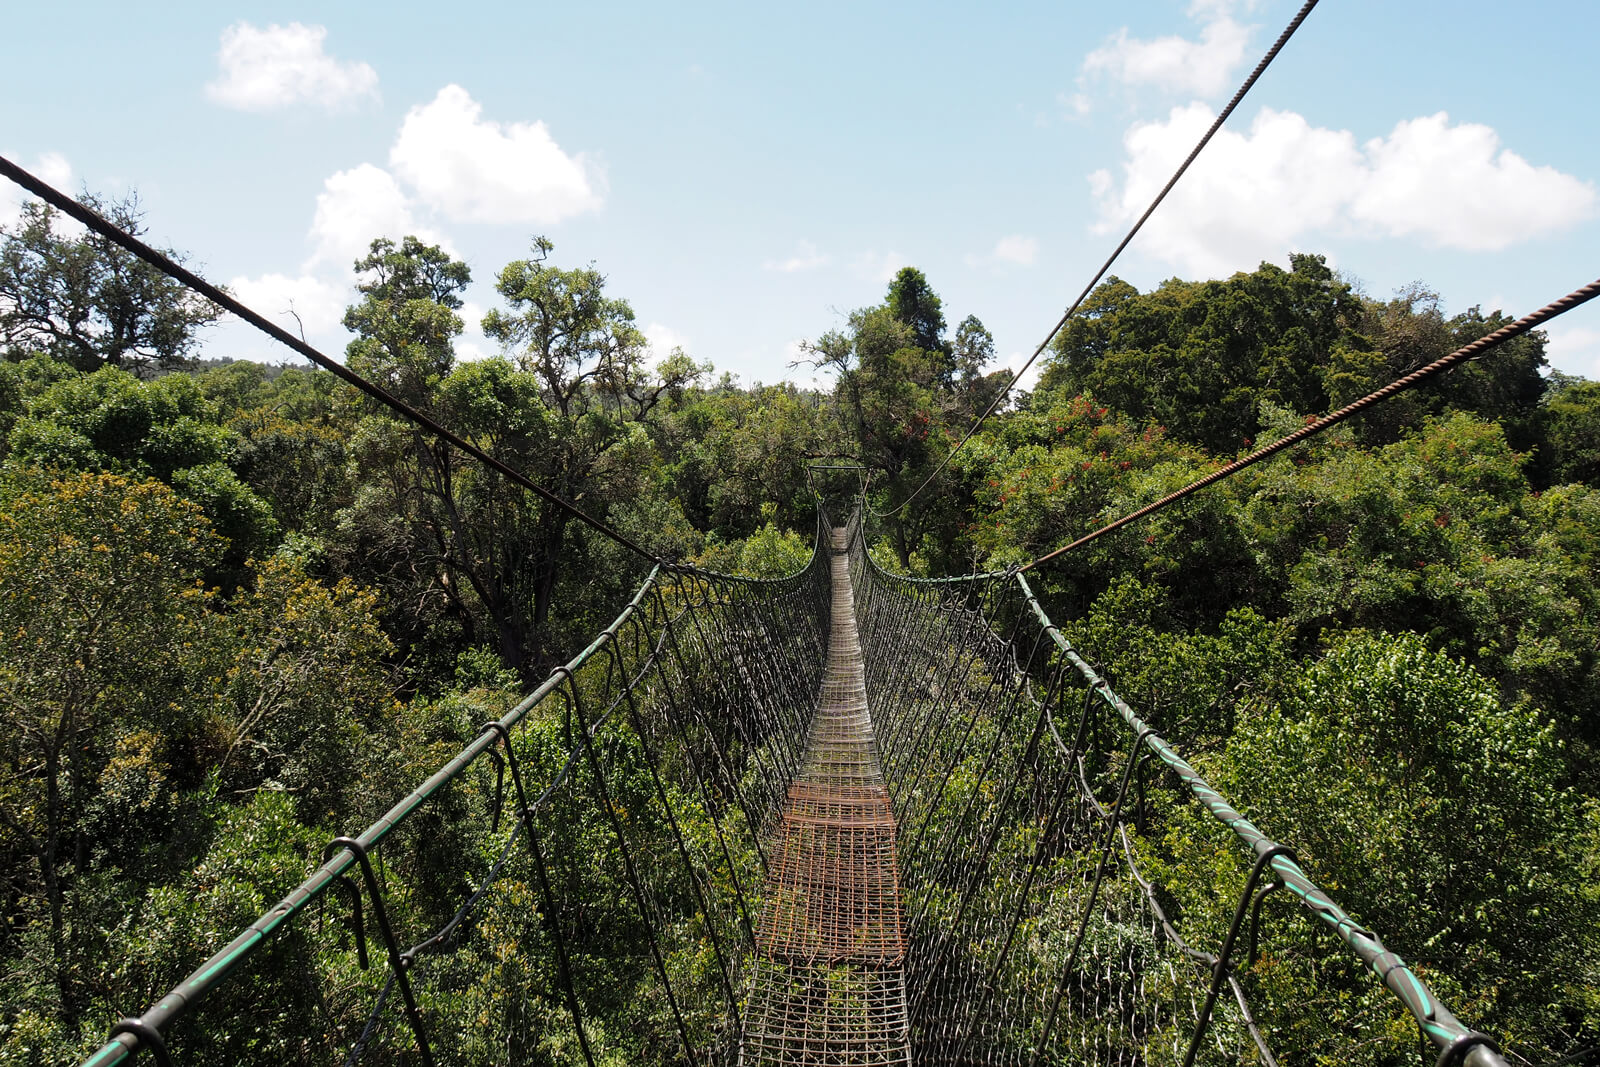 Ngare Ndare Forest Trust Canopy Walk